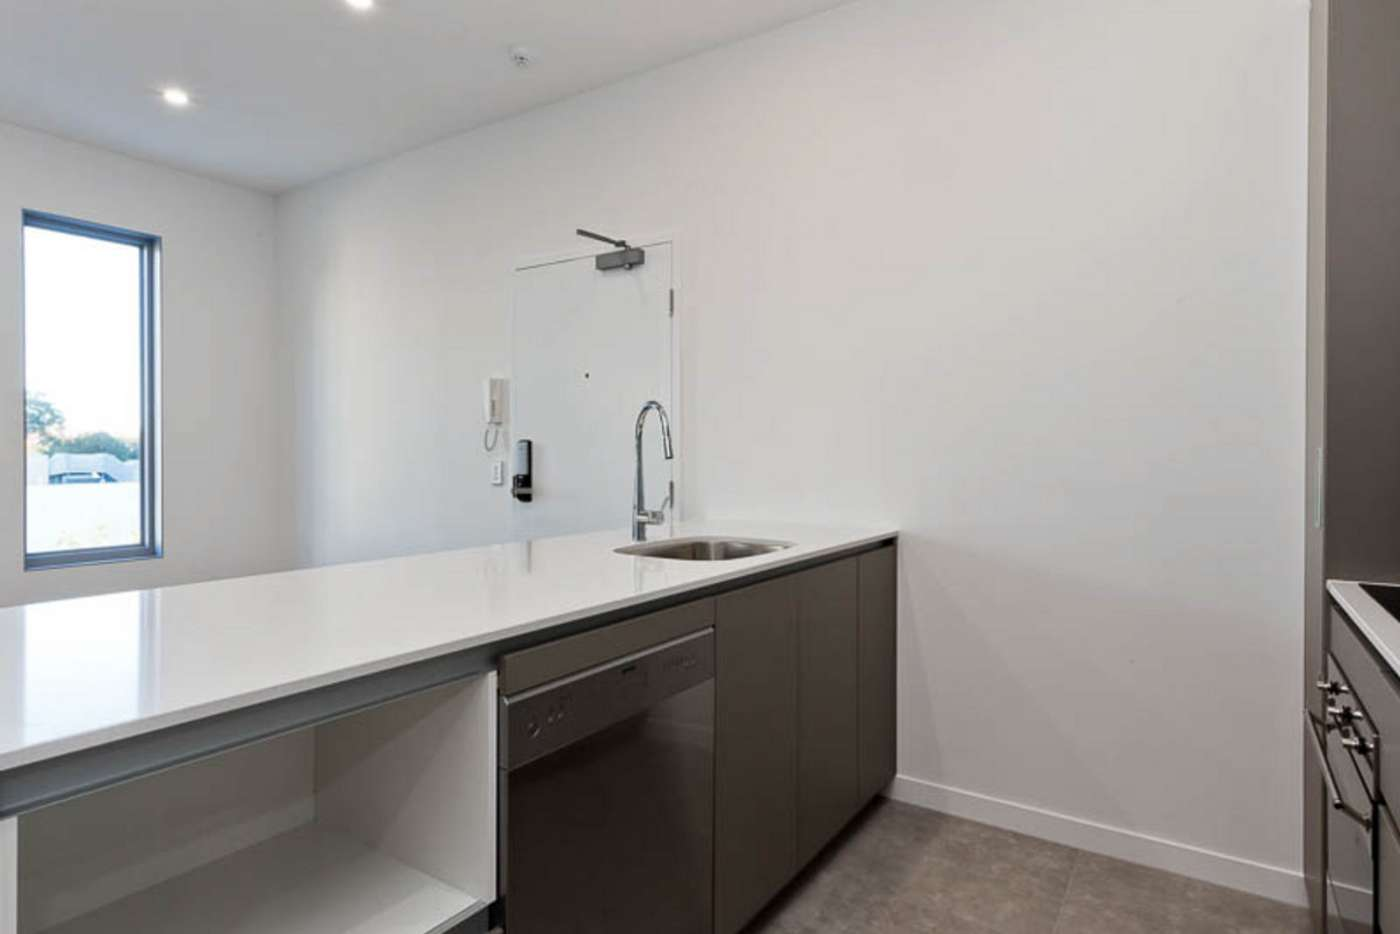 Sixth view of Homely apartment listing, 47/8 Hawksburn Road, Rivervale WA 6103